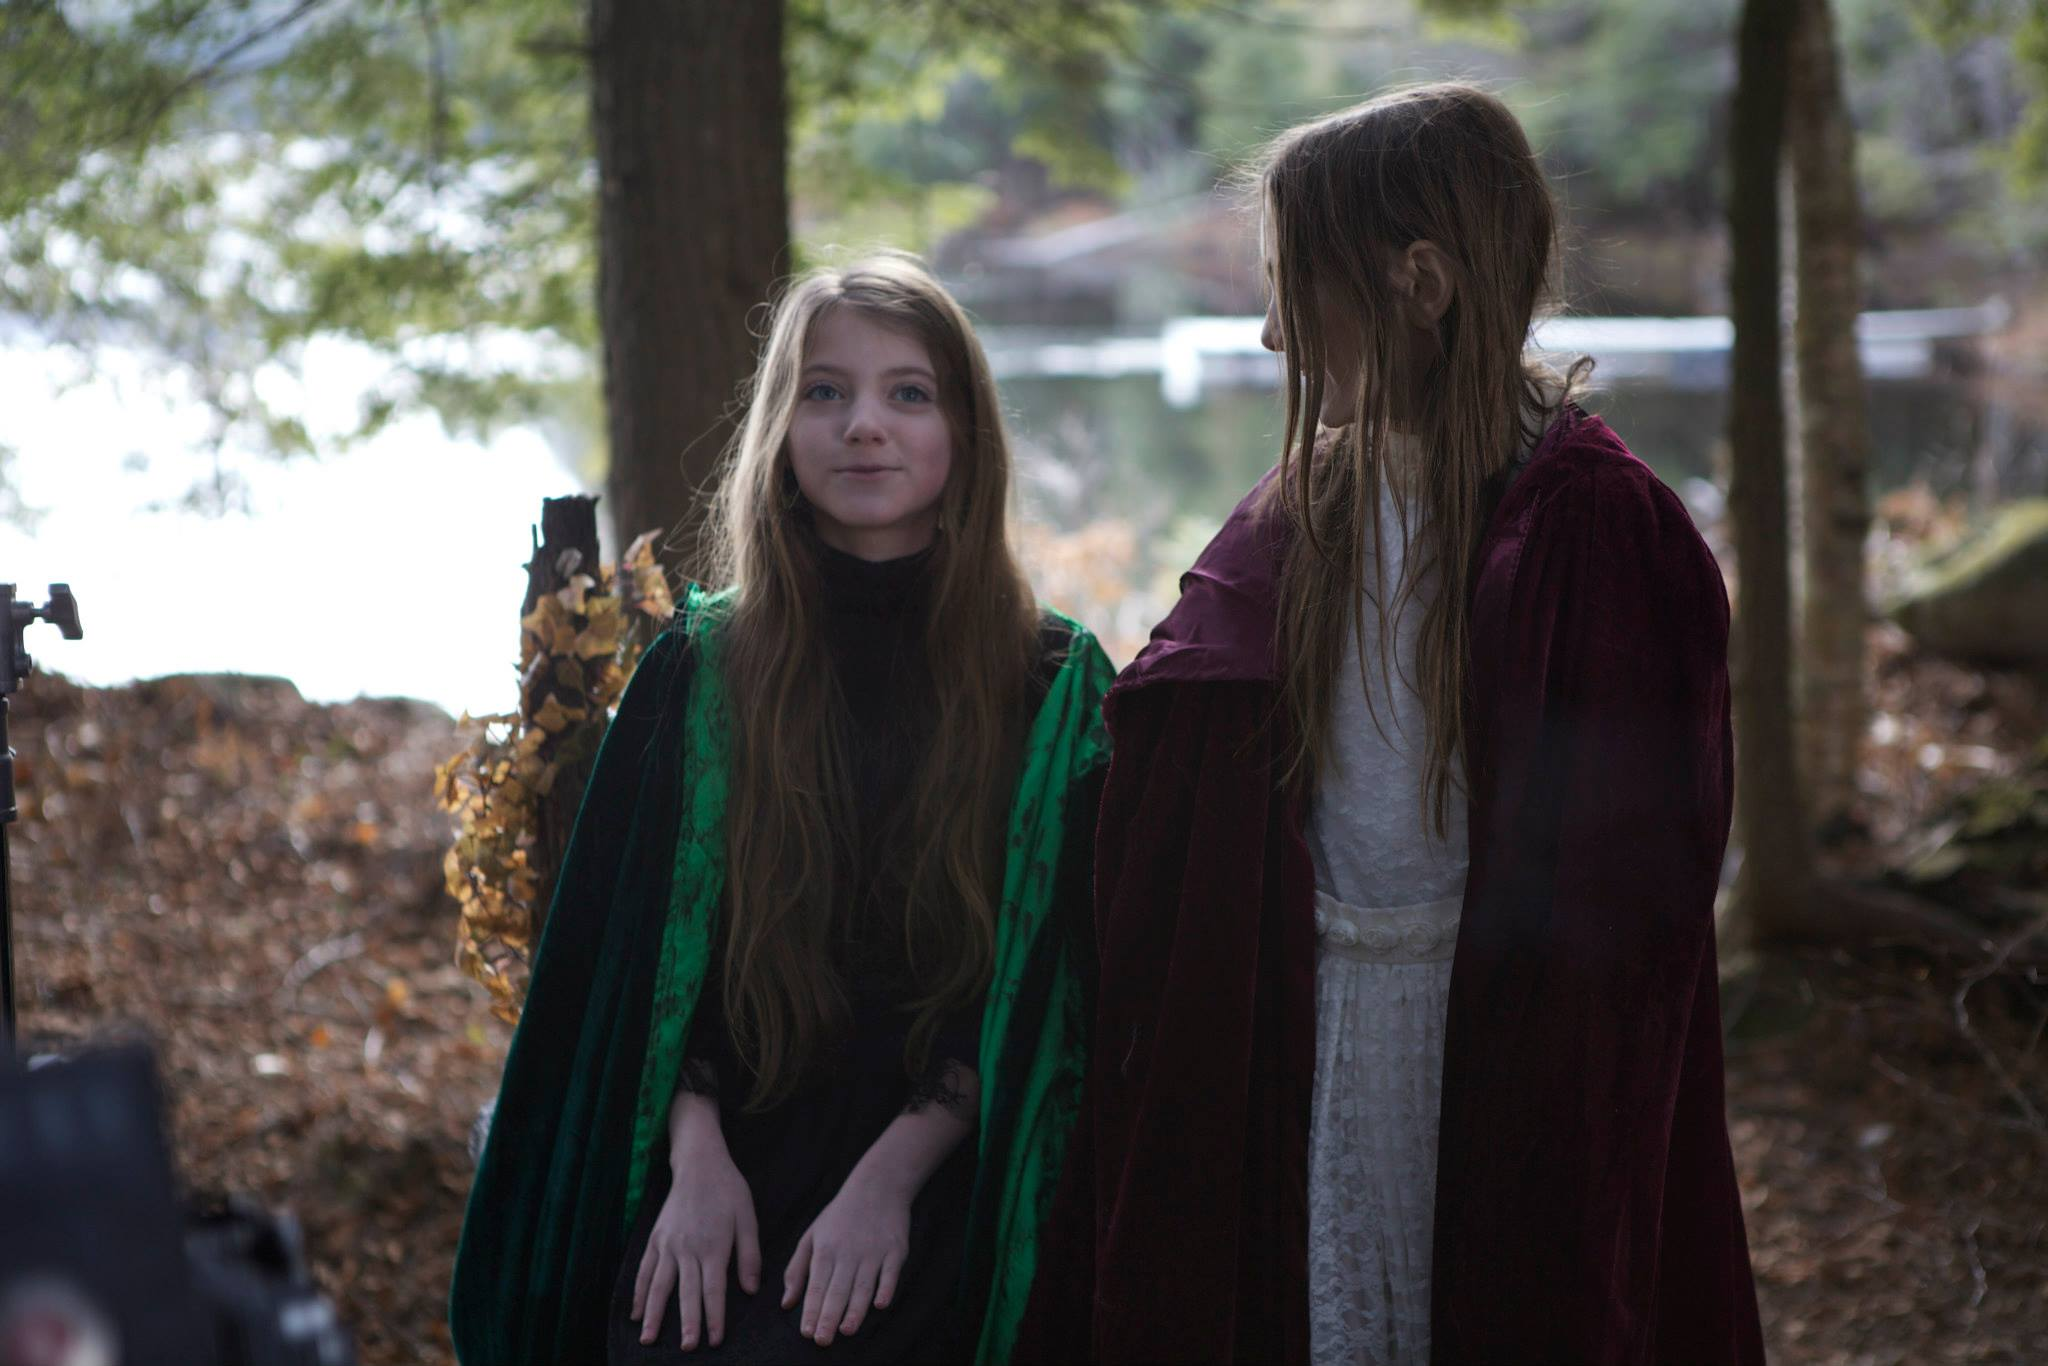 Lead actresses Ashley McDonald and Sophie Giroux